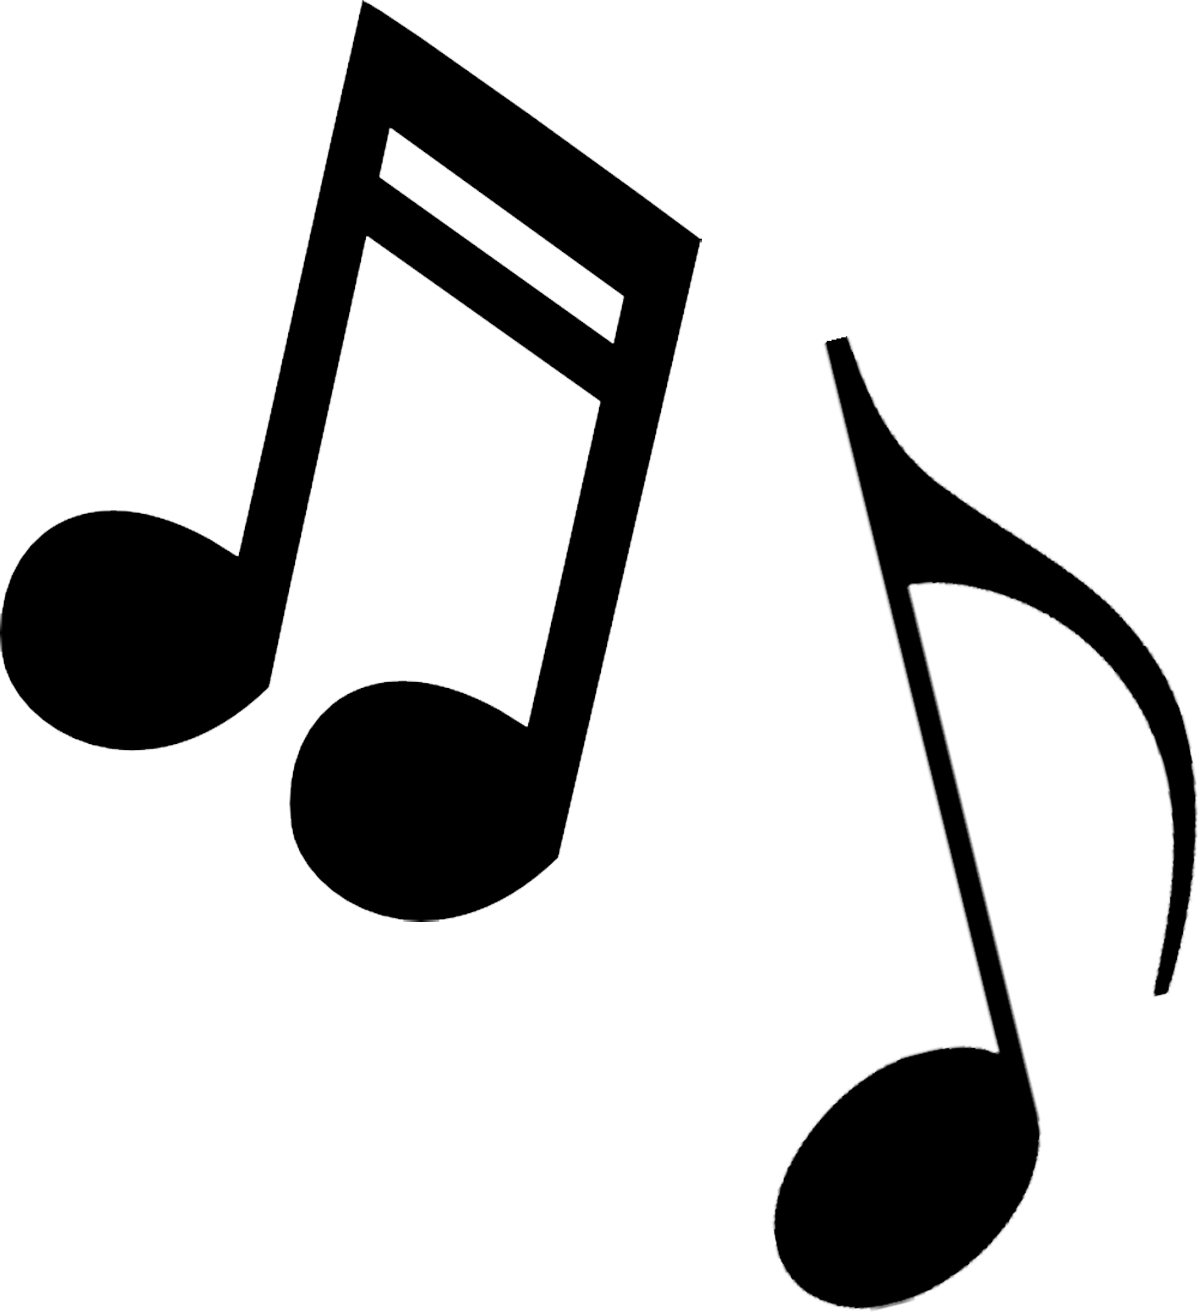 Musical clip art music notes free rf clipart image